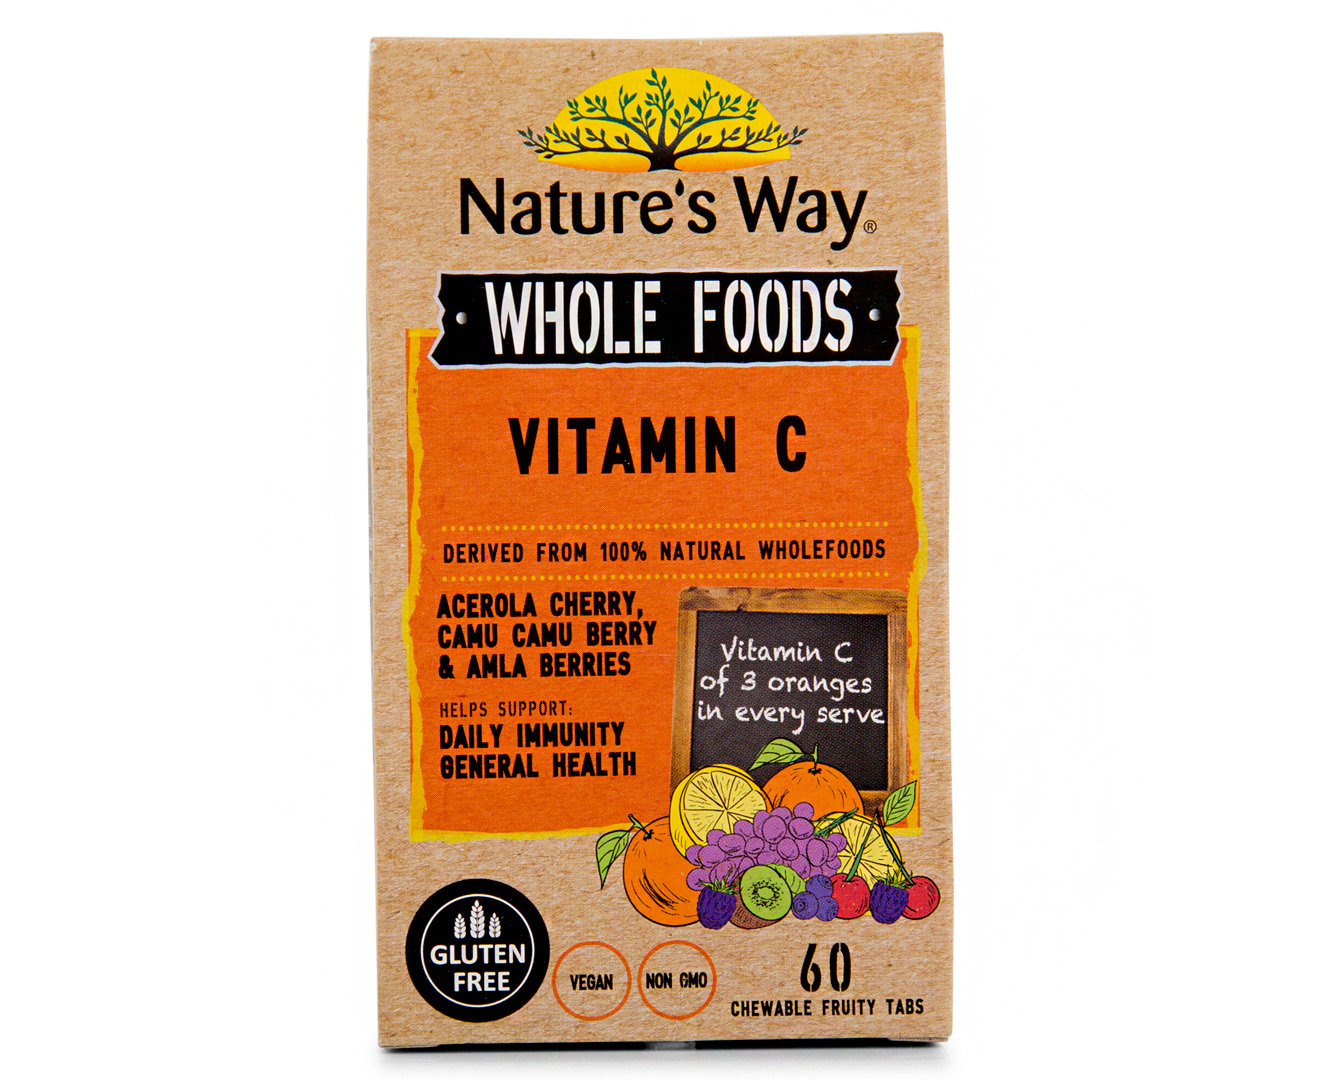 Vitamins Sold At Whole Foods